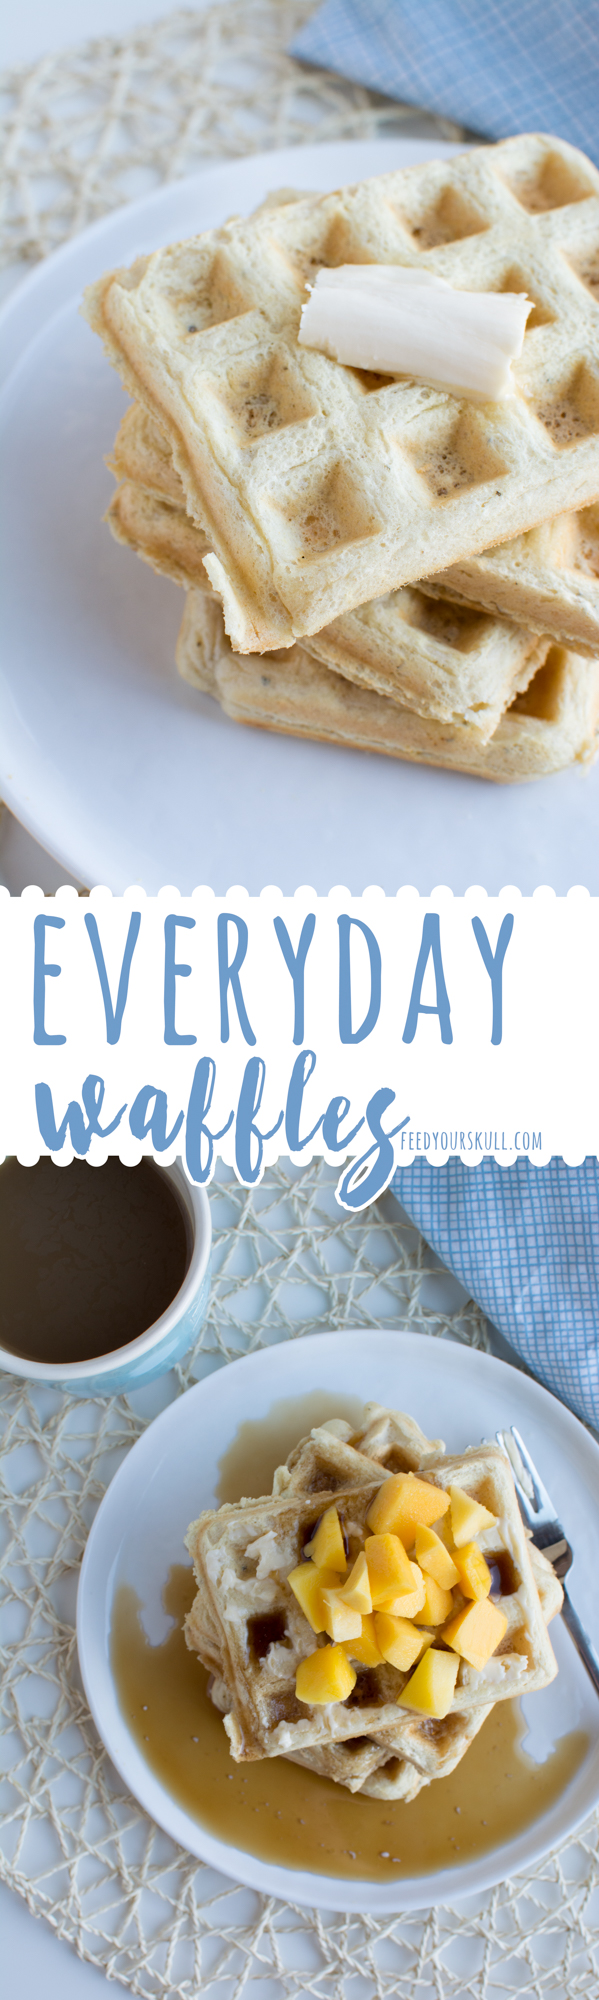 Everyday Waffles | Feed Your Skull